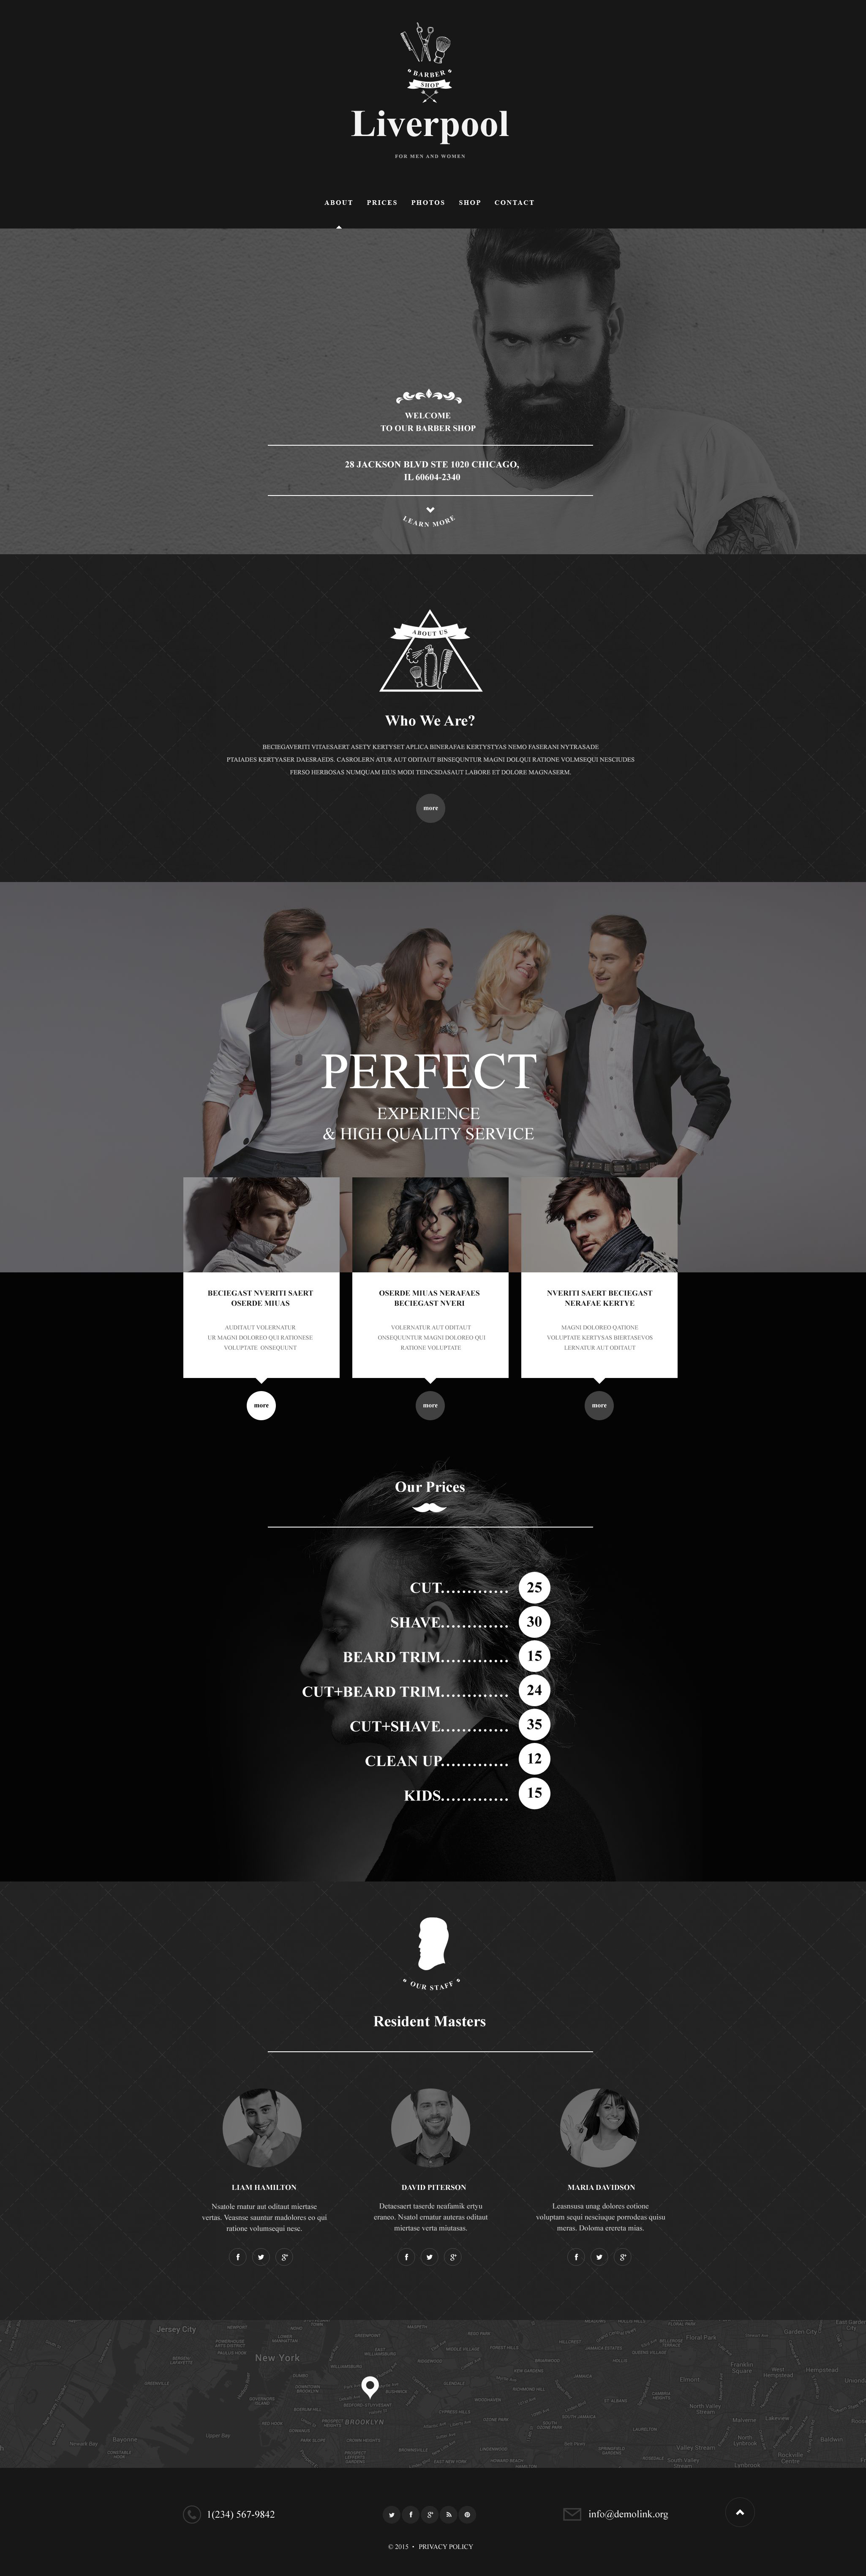 The Barber Barbershop Muse Templates Design 53843, one of the best Muse templates of its kind (beauty, most popular), also known as barber barbershop Muse template, hair salon Muse template, fashion Muse template, style Muse template, services Muse template, models Muse template, catalogue Muse template, masters Muse template, experts Muse template, portfolio Muse template, awards Muse template, waving Muse template, arranging Muse template, coloring Muse template, advices Muse template, coiffure Muse template, hairdresser Muse template, glamour beauty Muse template, health and related with barber barbershop, hair salon, fashion, style, services, models, catalogue, masters, experts, portfolio, awards, waving, arranging, coloring, advices, coiffure, hairdresser, glamour beauty, health, etc.